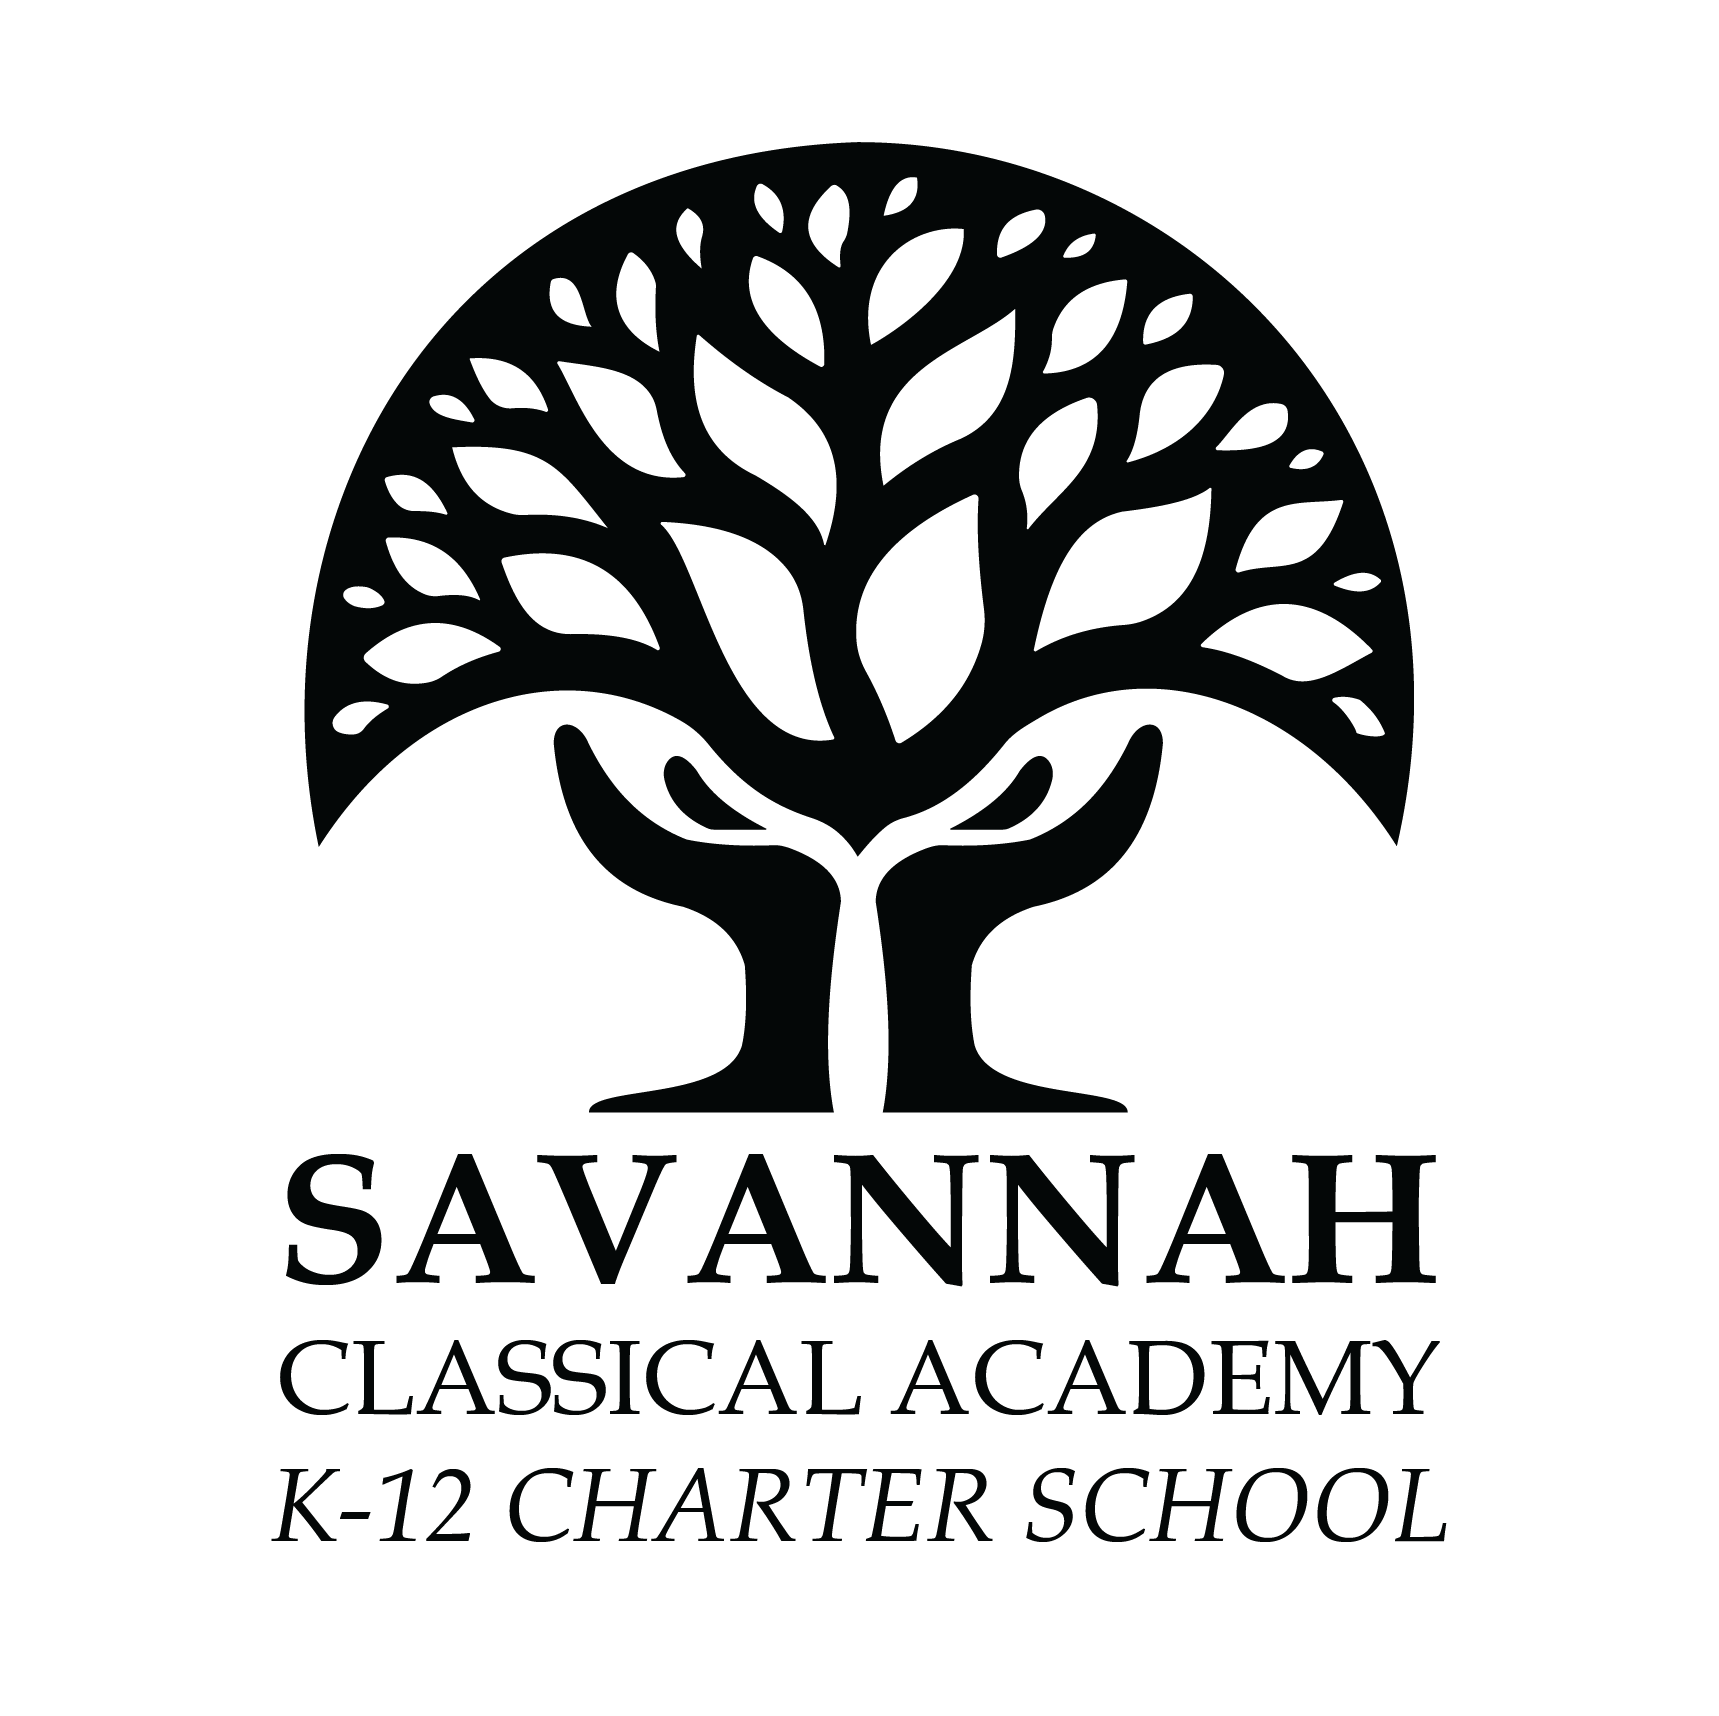 DEMAND FOR CHARTER SCHOOLS IN CHATHAM COUNTY REFLECTS